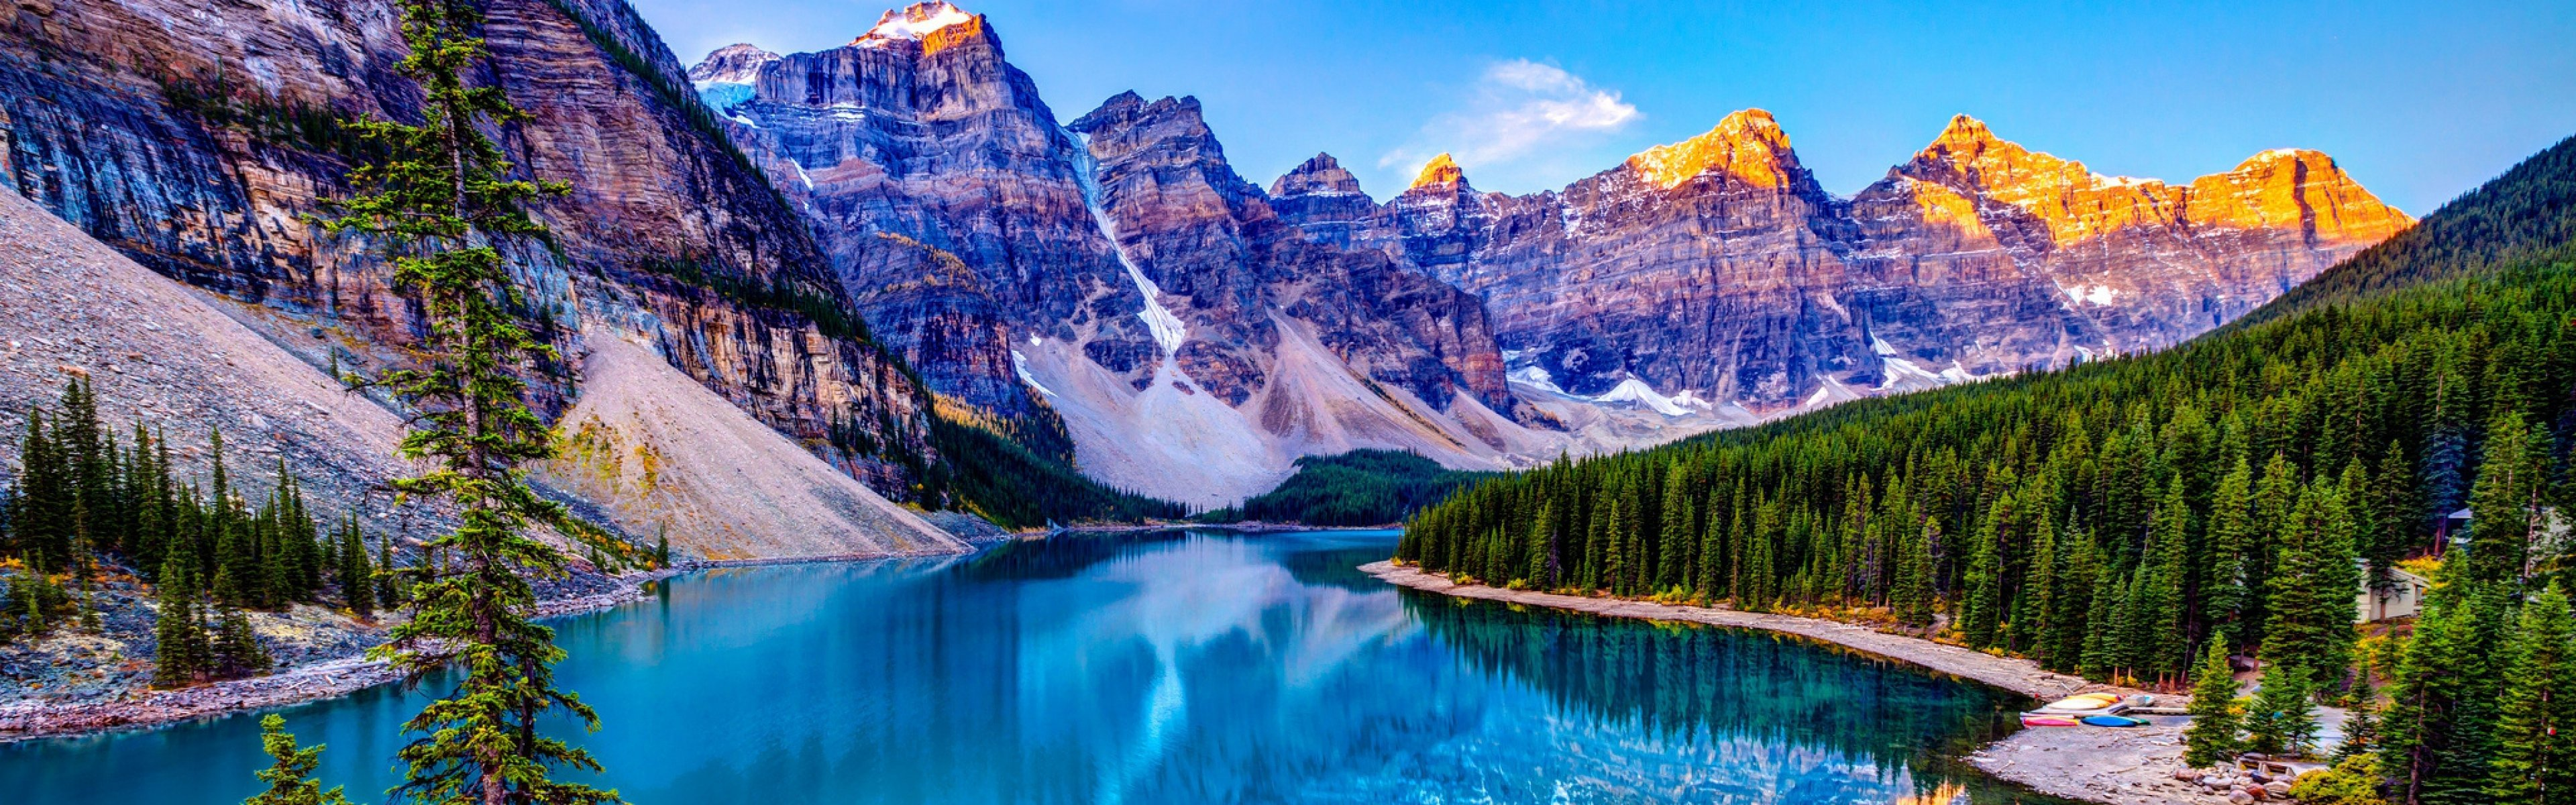 3840x1200 Wallpaper nature mountains sky lake clouds 3840x1200